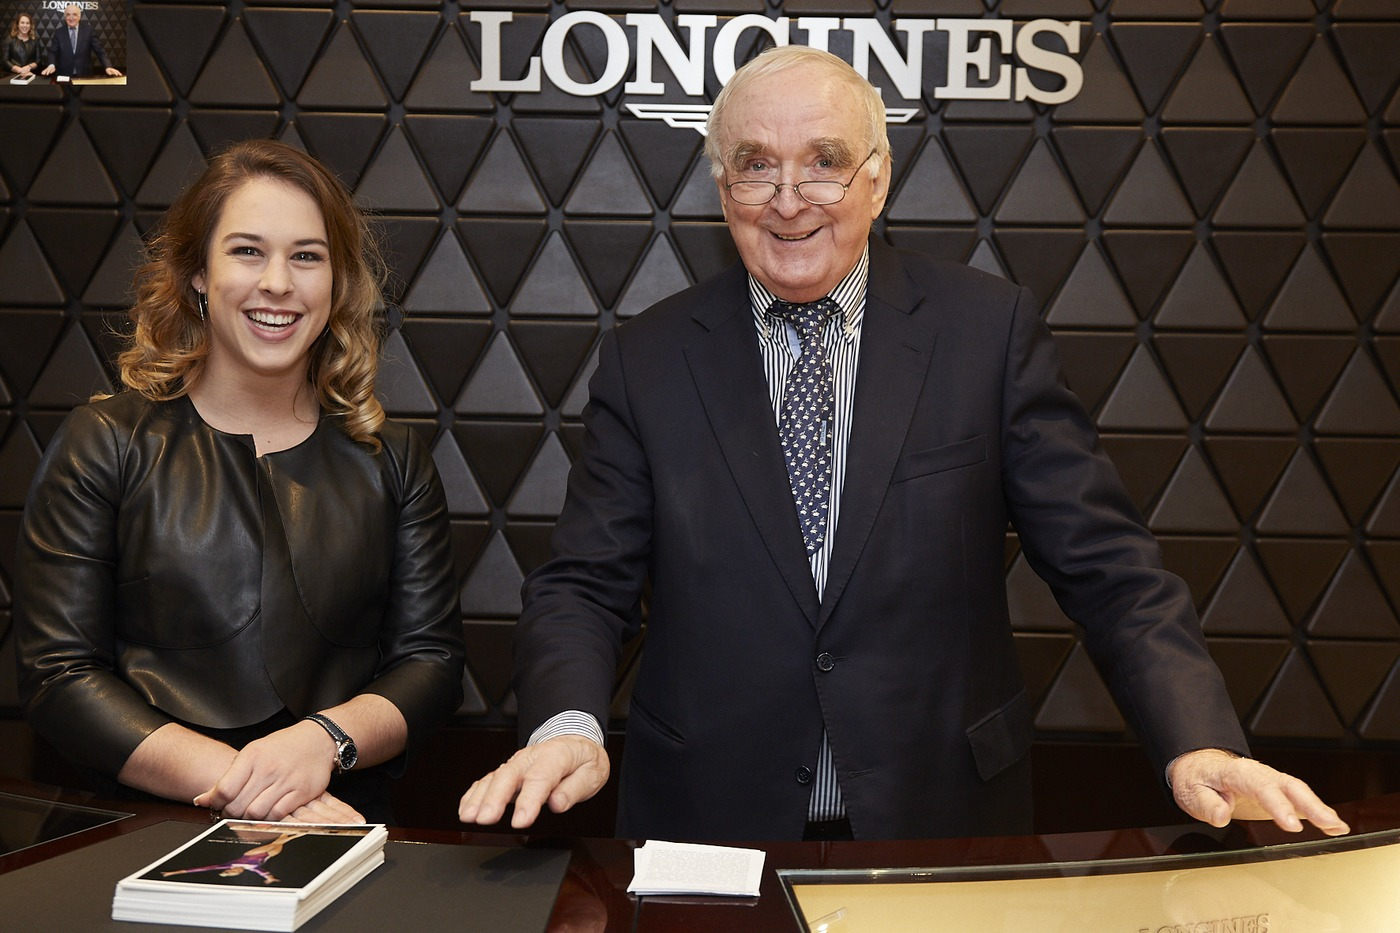 Longines Corporate Event: Longines officially inaugurates its first Corporate Boutique in Switzerland in presence of Giulia Steingruber, Ambassador of Elegance 2